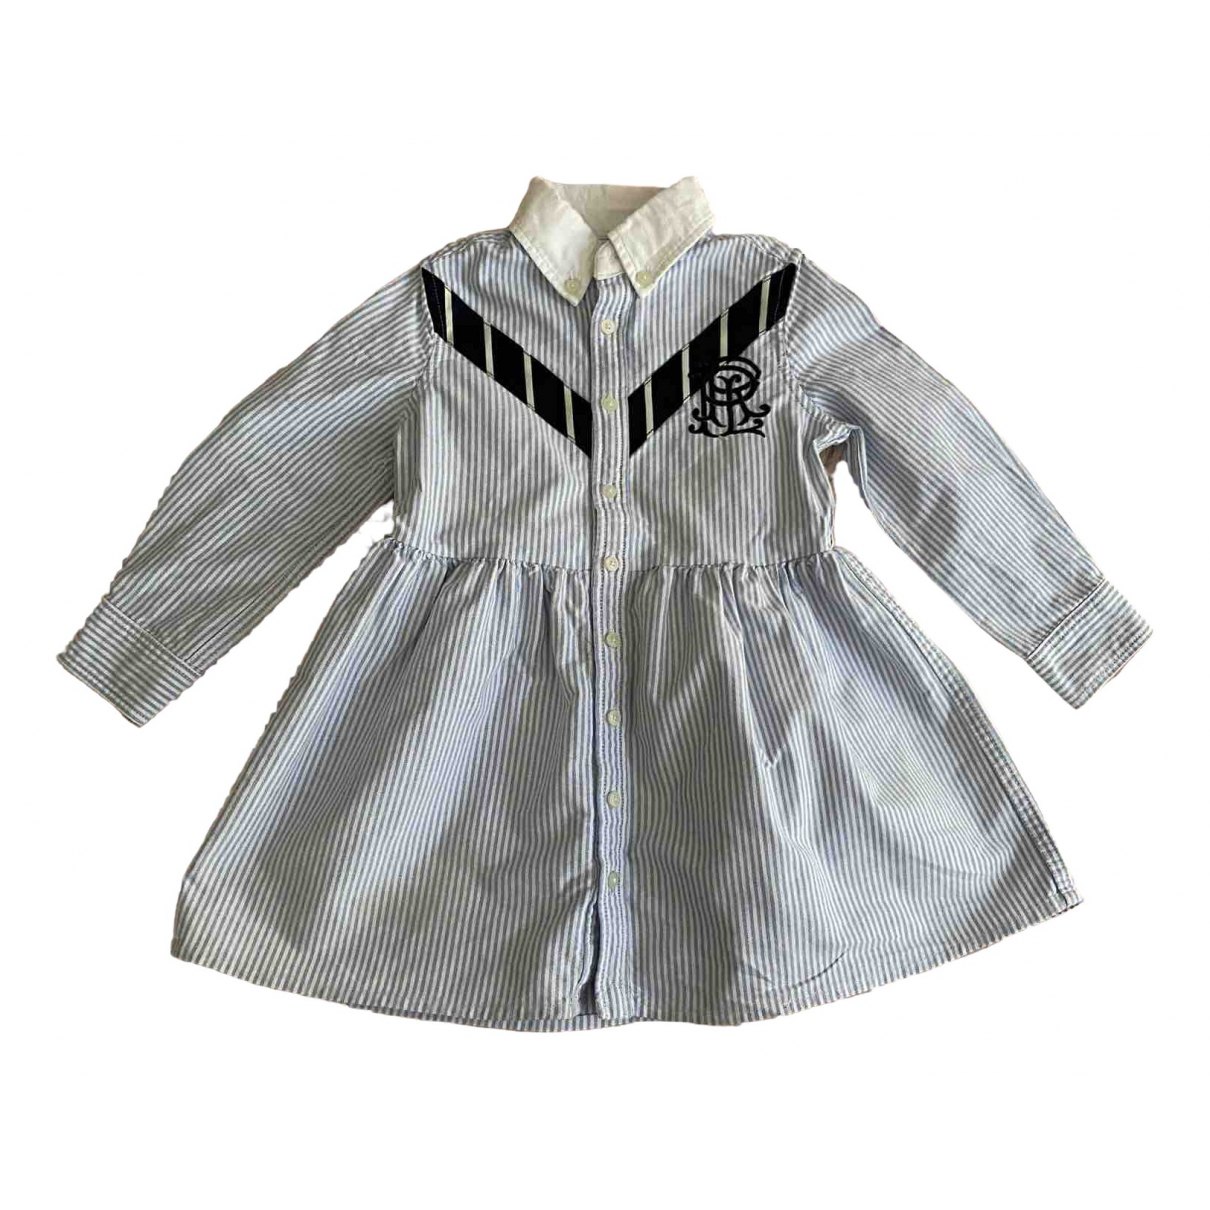 Ralph Lauren \N Blue Cotton dress for Kids 2 years - up to 86cm FR